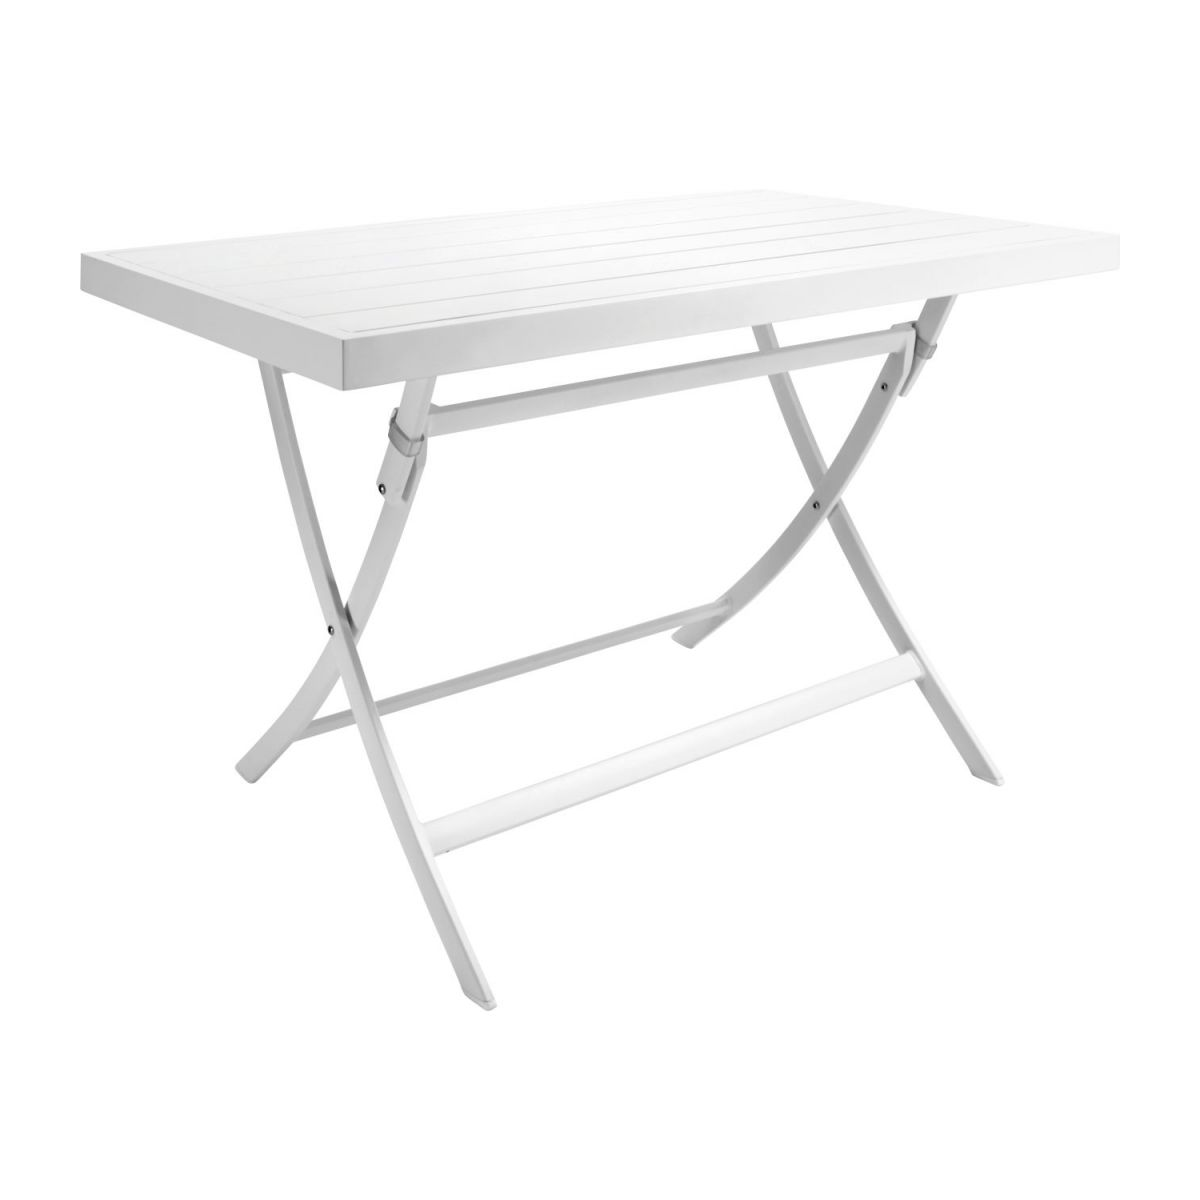 Table rectangulaire Blanc plateau verre Lechuza - Tables en résine ...